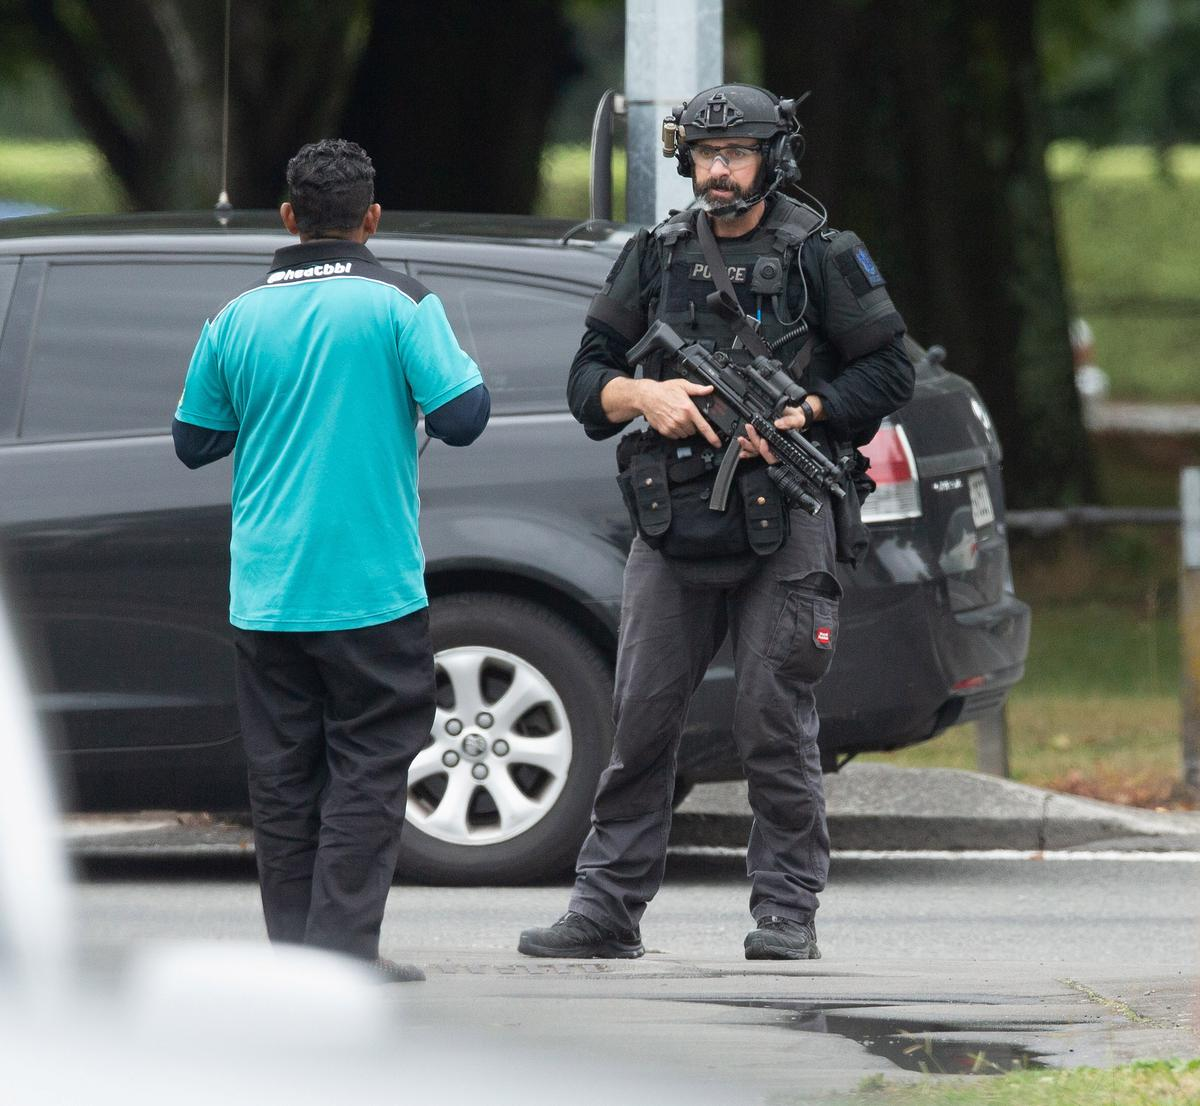 France steps up security near religious sites after New Zealand attacks